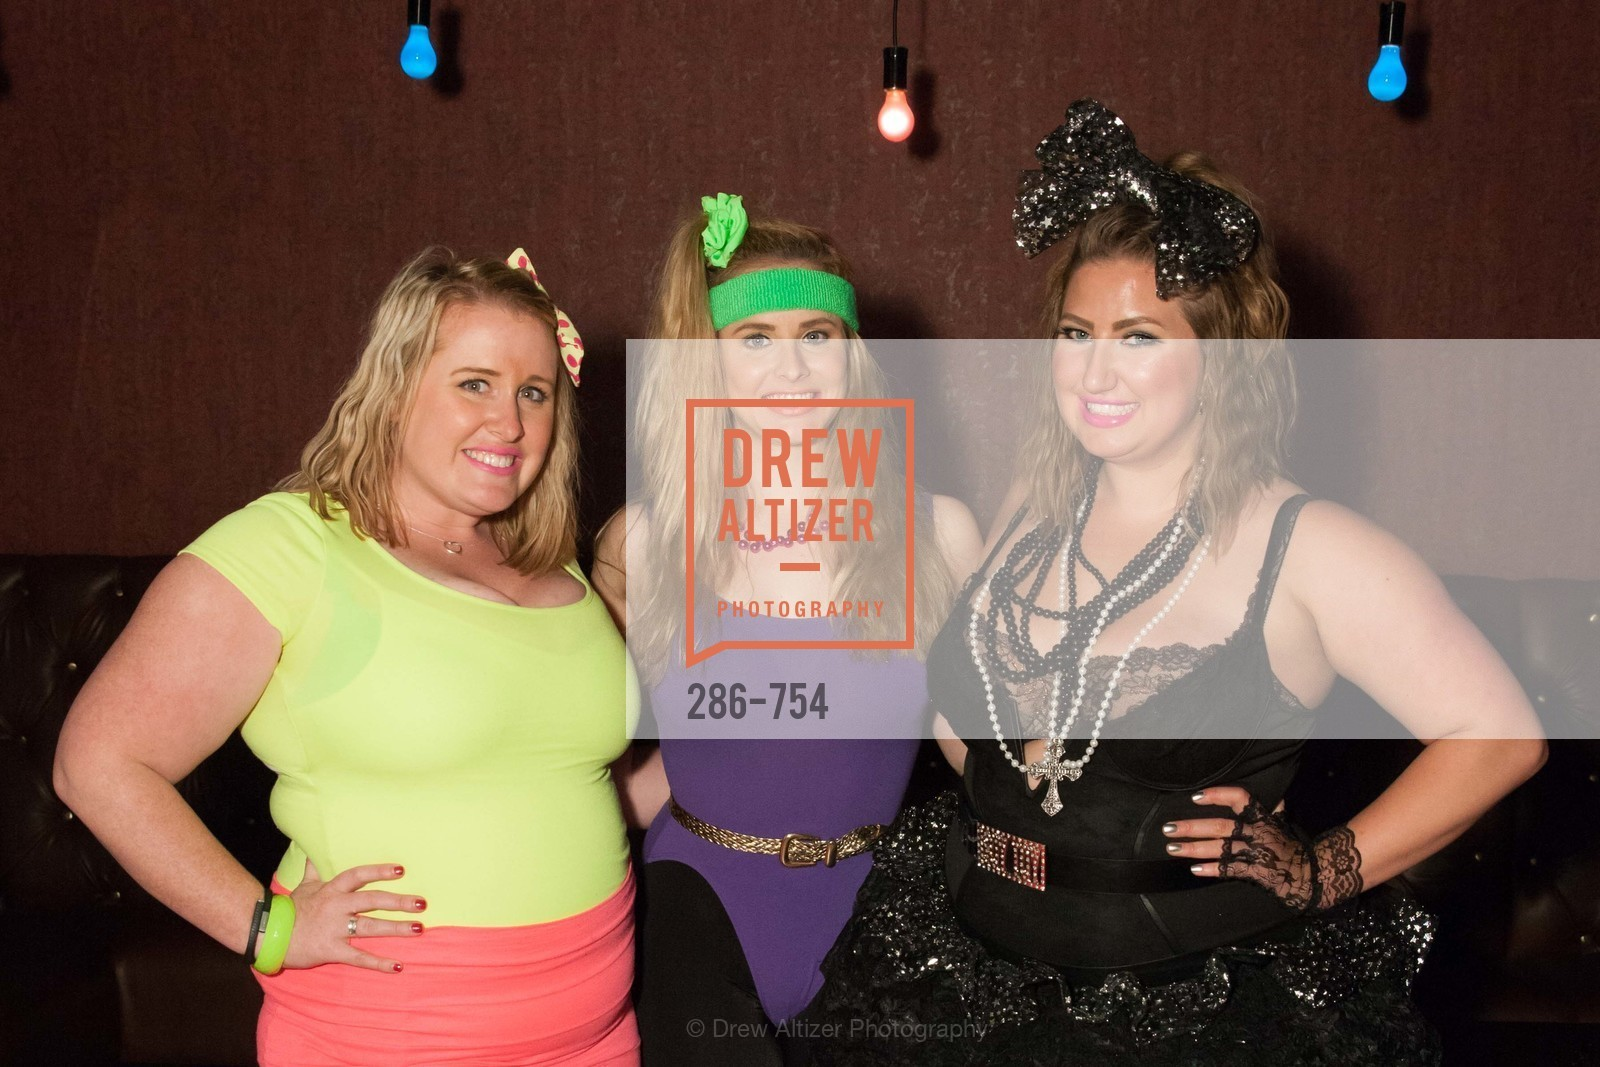 Eryn Golden, Elizabeth Sgarrella, Annice Benisch, SPINSTERS OF SAN FRANCISCO Party Like It's 1985 Charity Party, US, May 29th, 2015,Drew Altizer, Drew Altizer Photography, full-service agency, private events, San Francisco photographer, photographer california